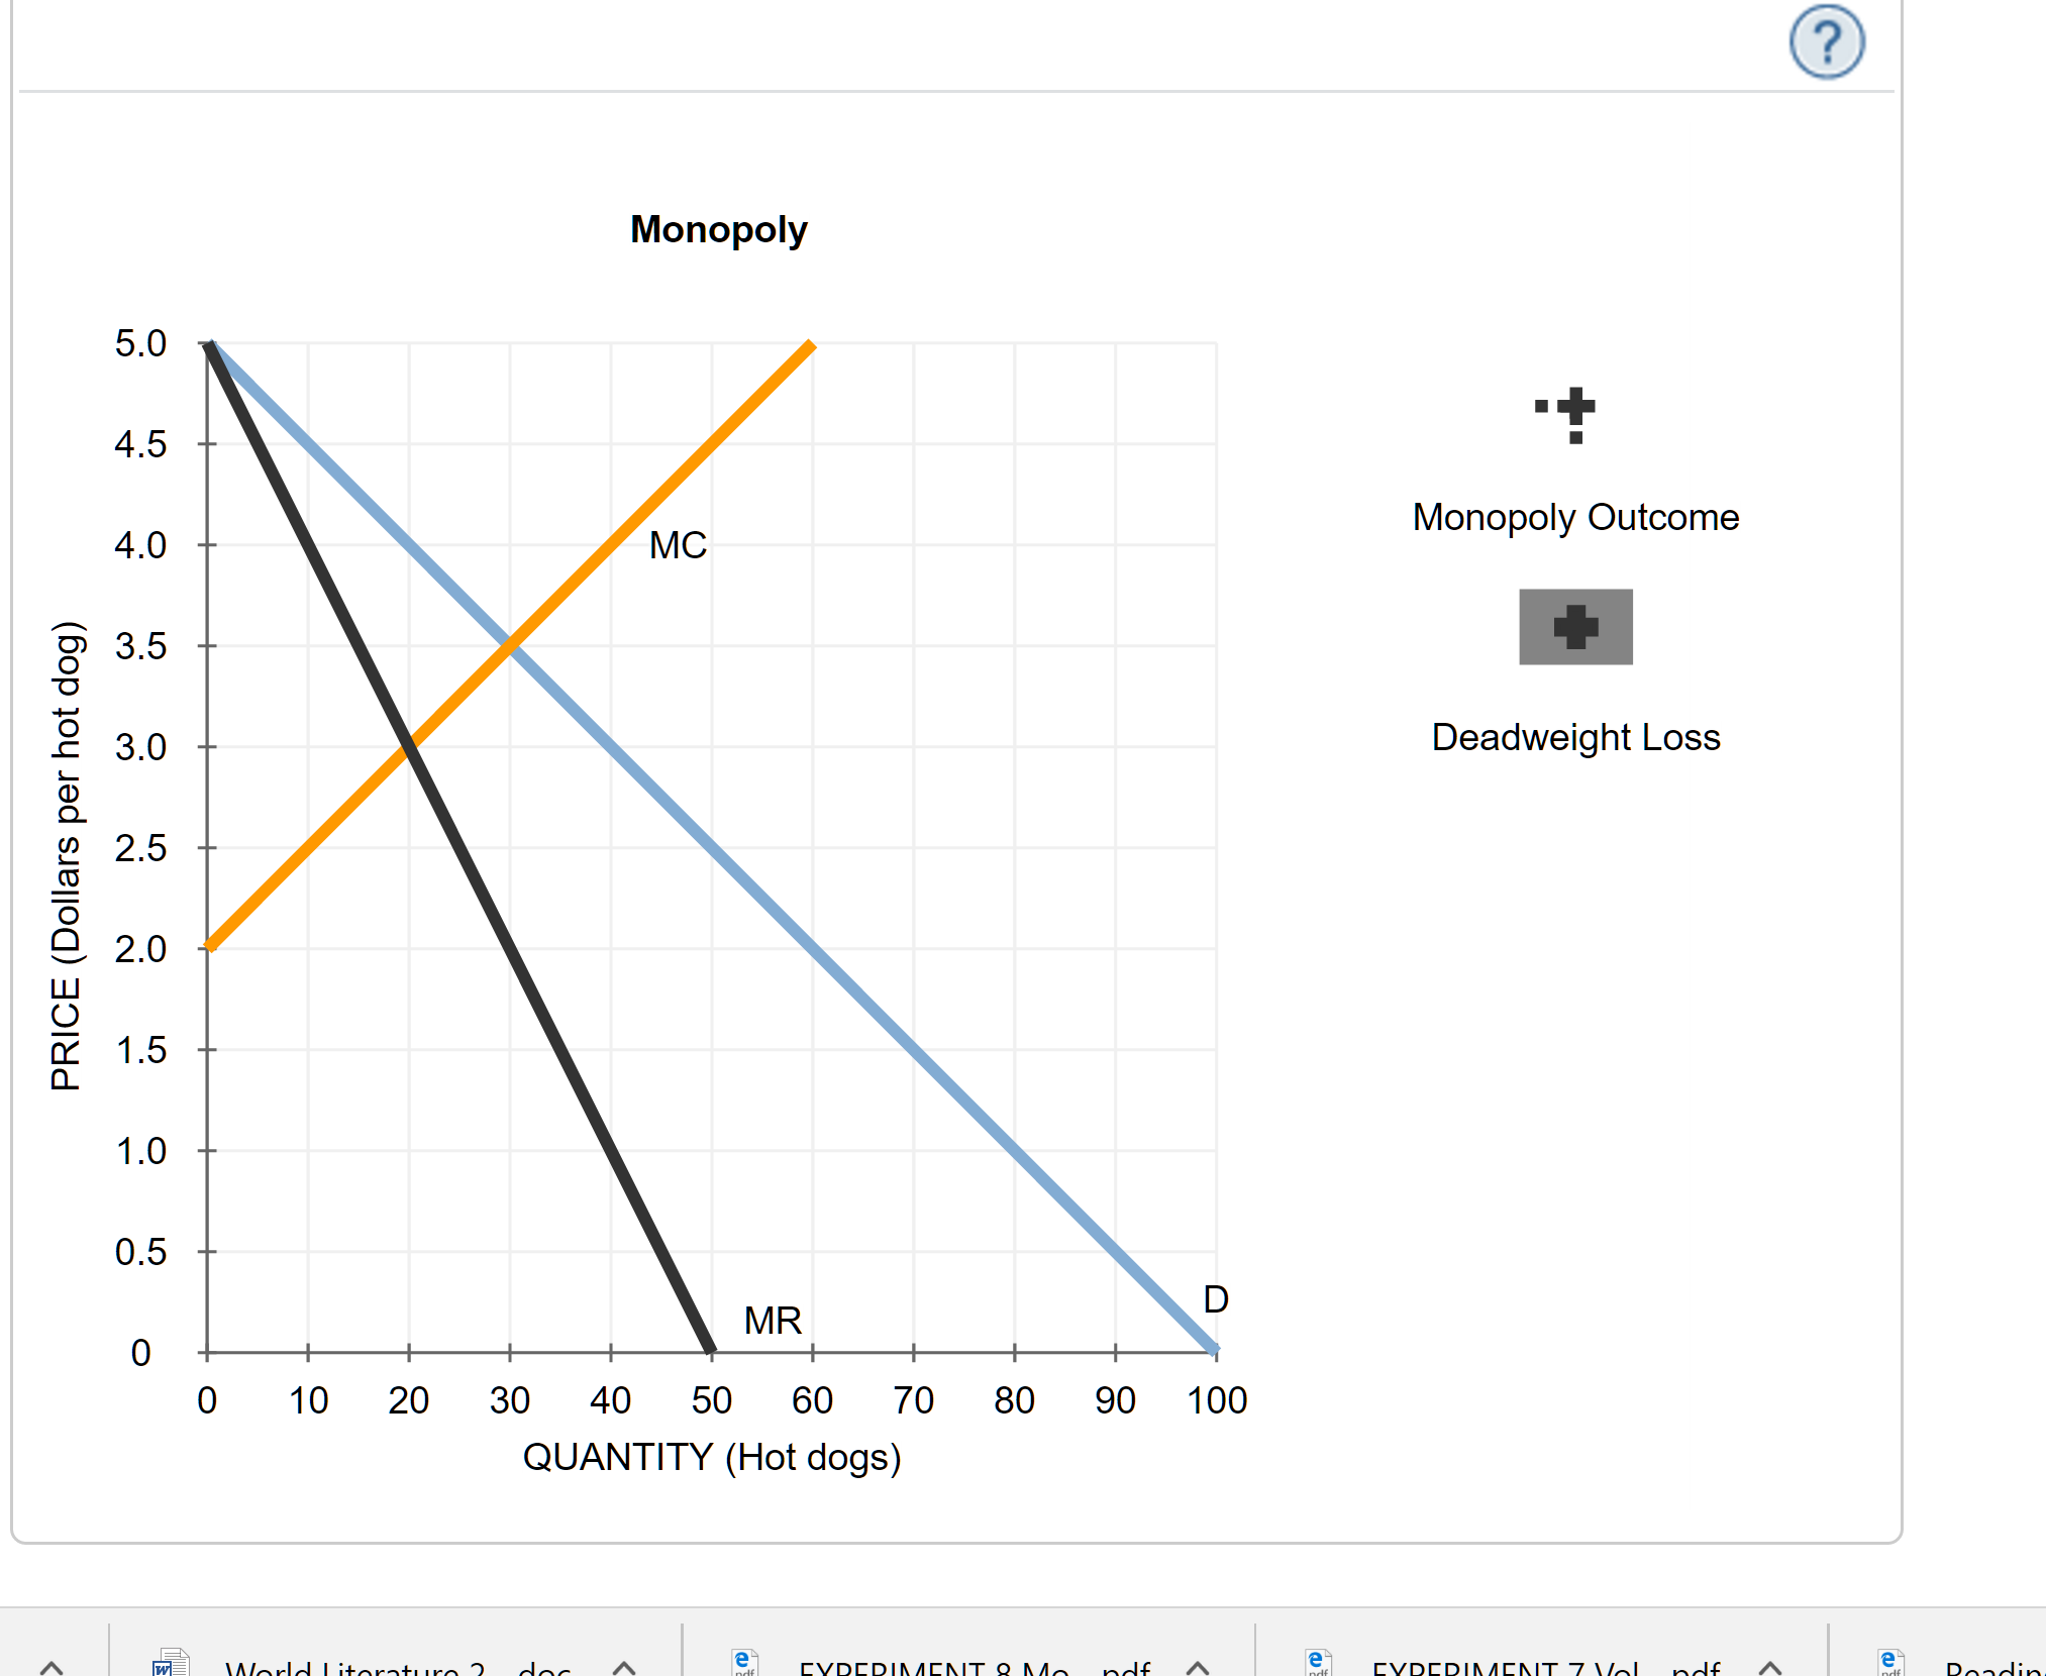 how to find total cost on a monopoly graph